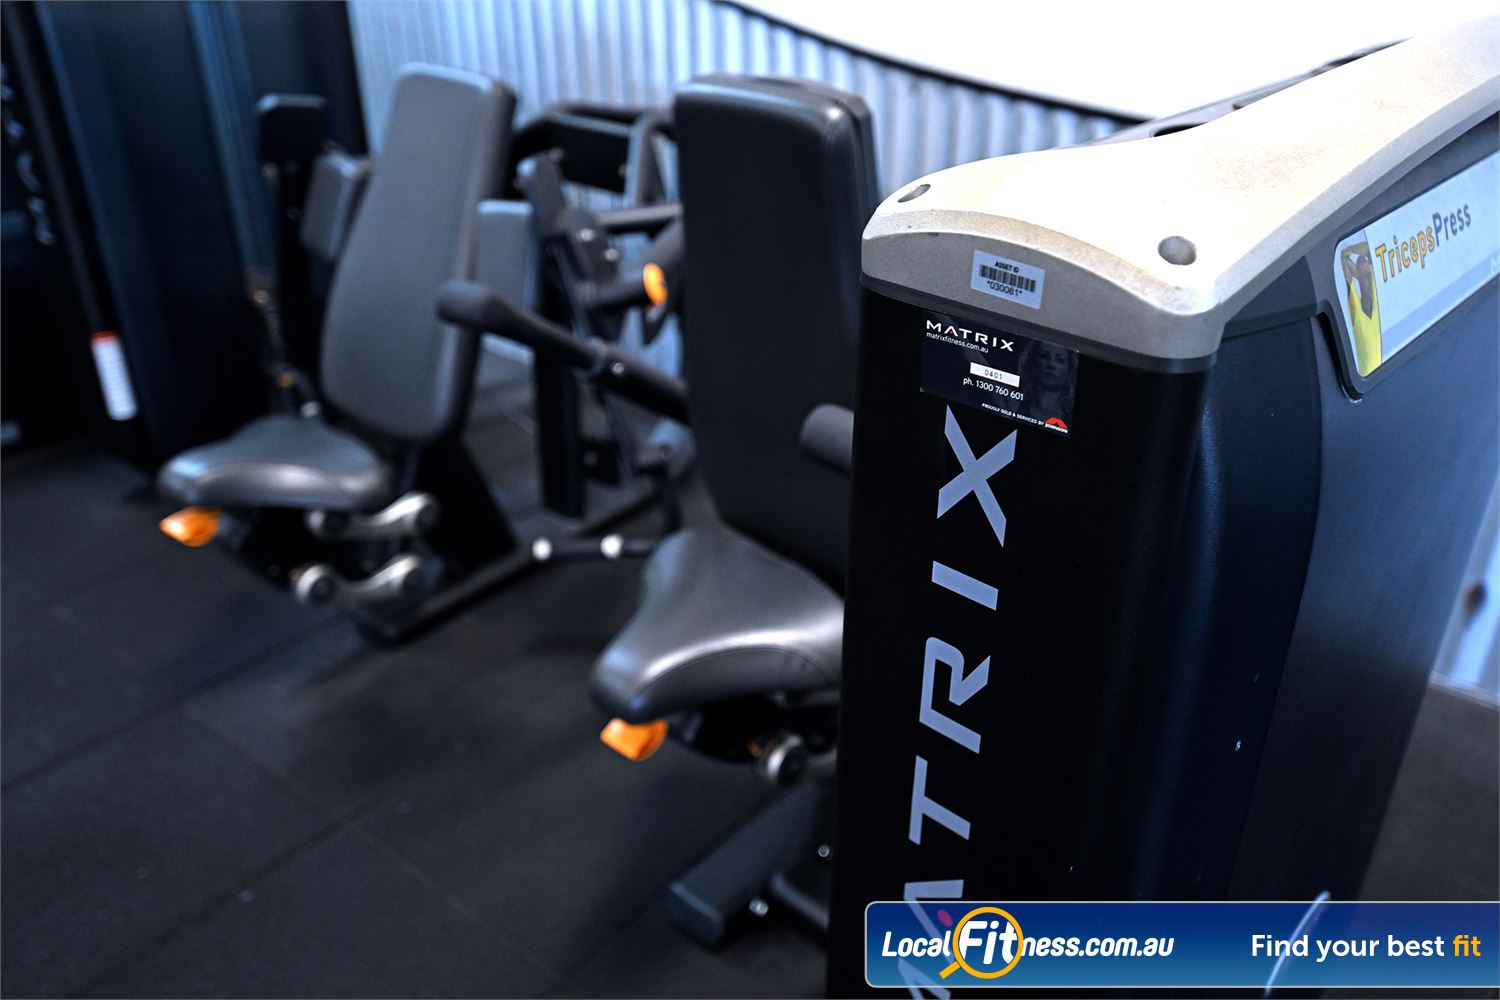 Goodlife Health Clubs Hoppers Crossing Our Hoppers Crossing gym includes state of the art equipment from MATRIX.